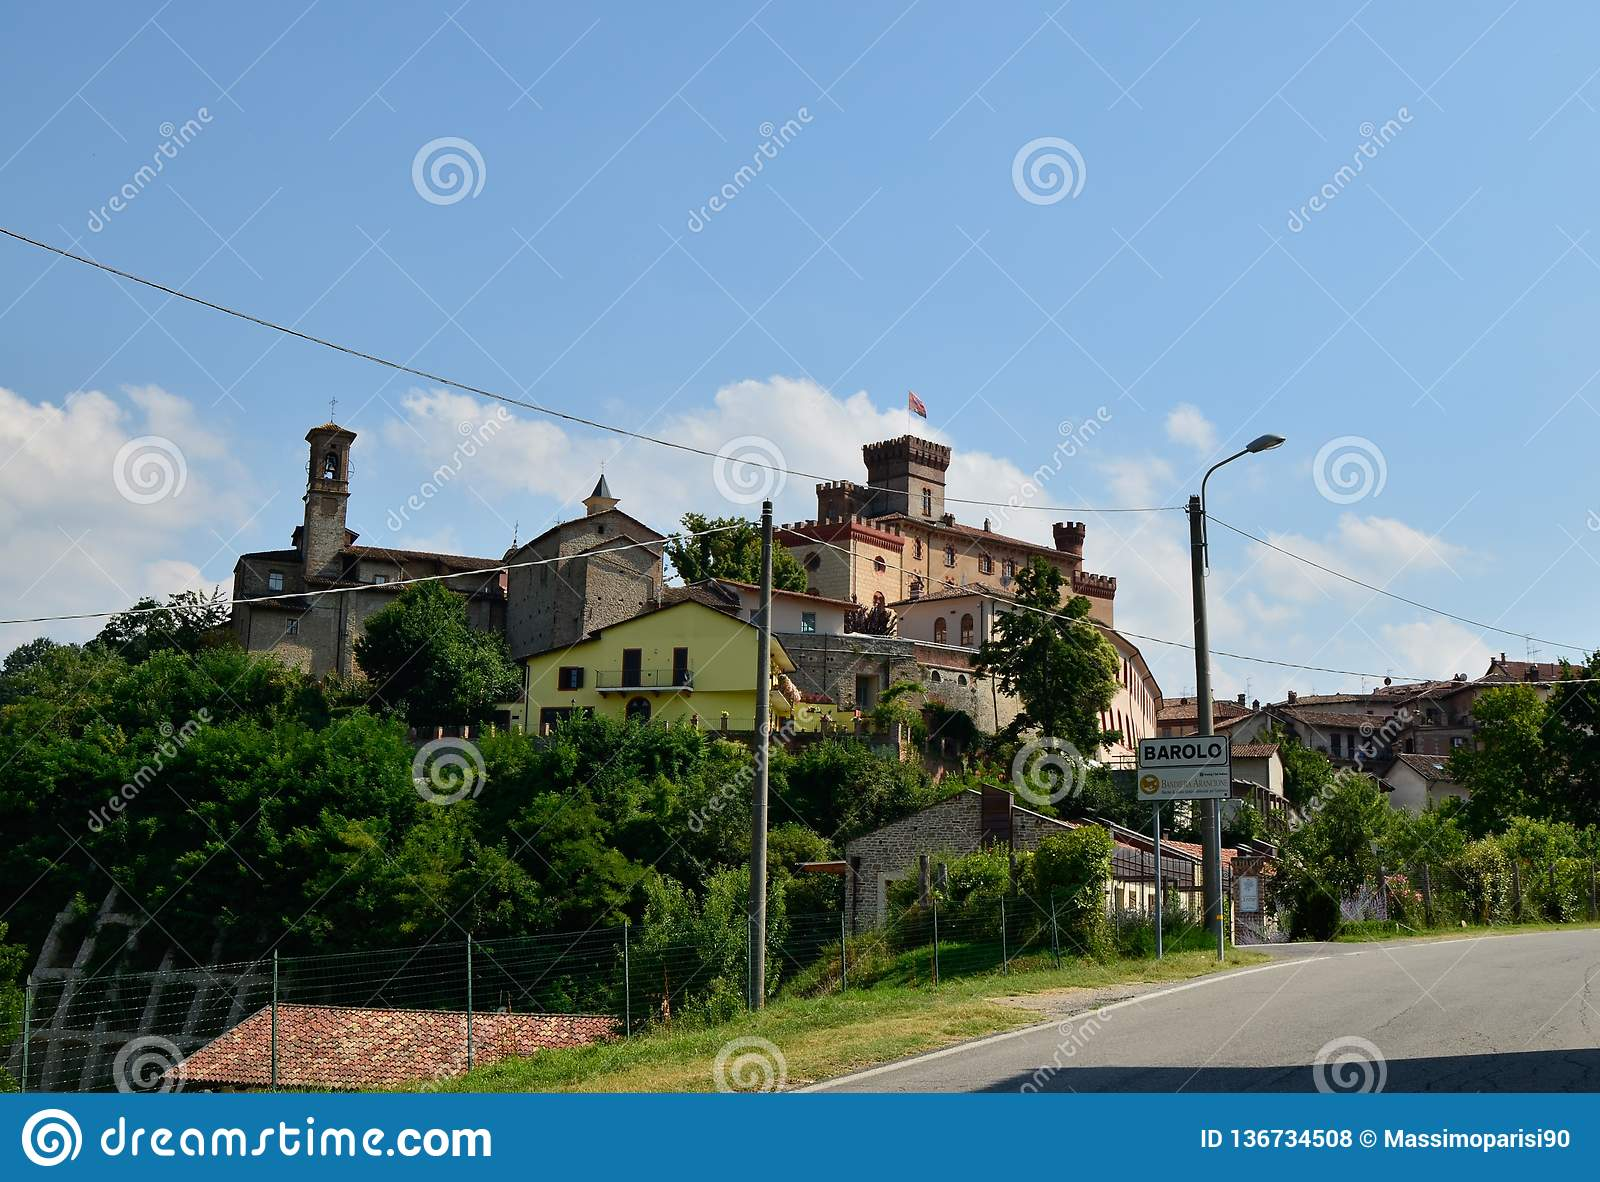 Barolo, province of Cuneo, Piedmont, Italy. July 2018. View on the historical center of Barolo